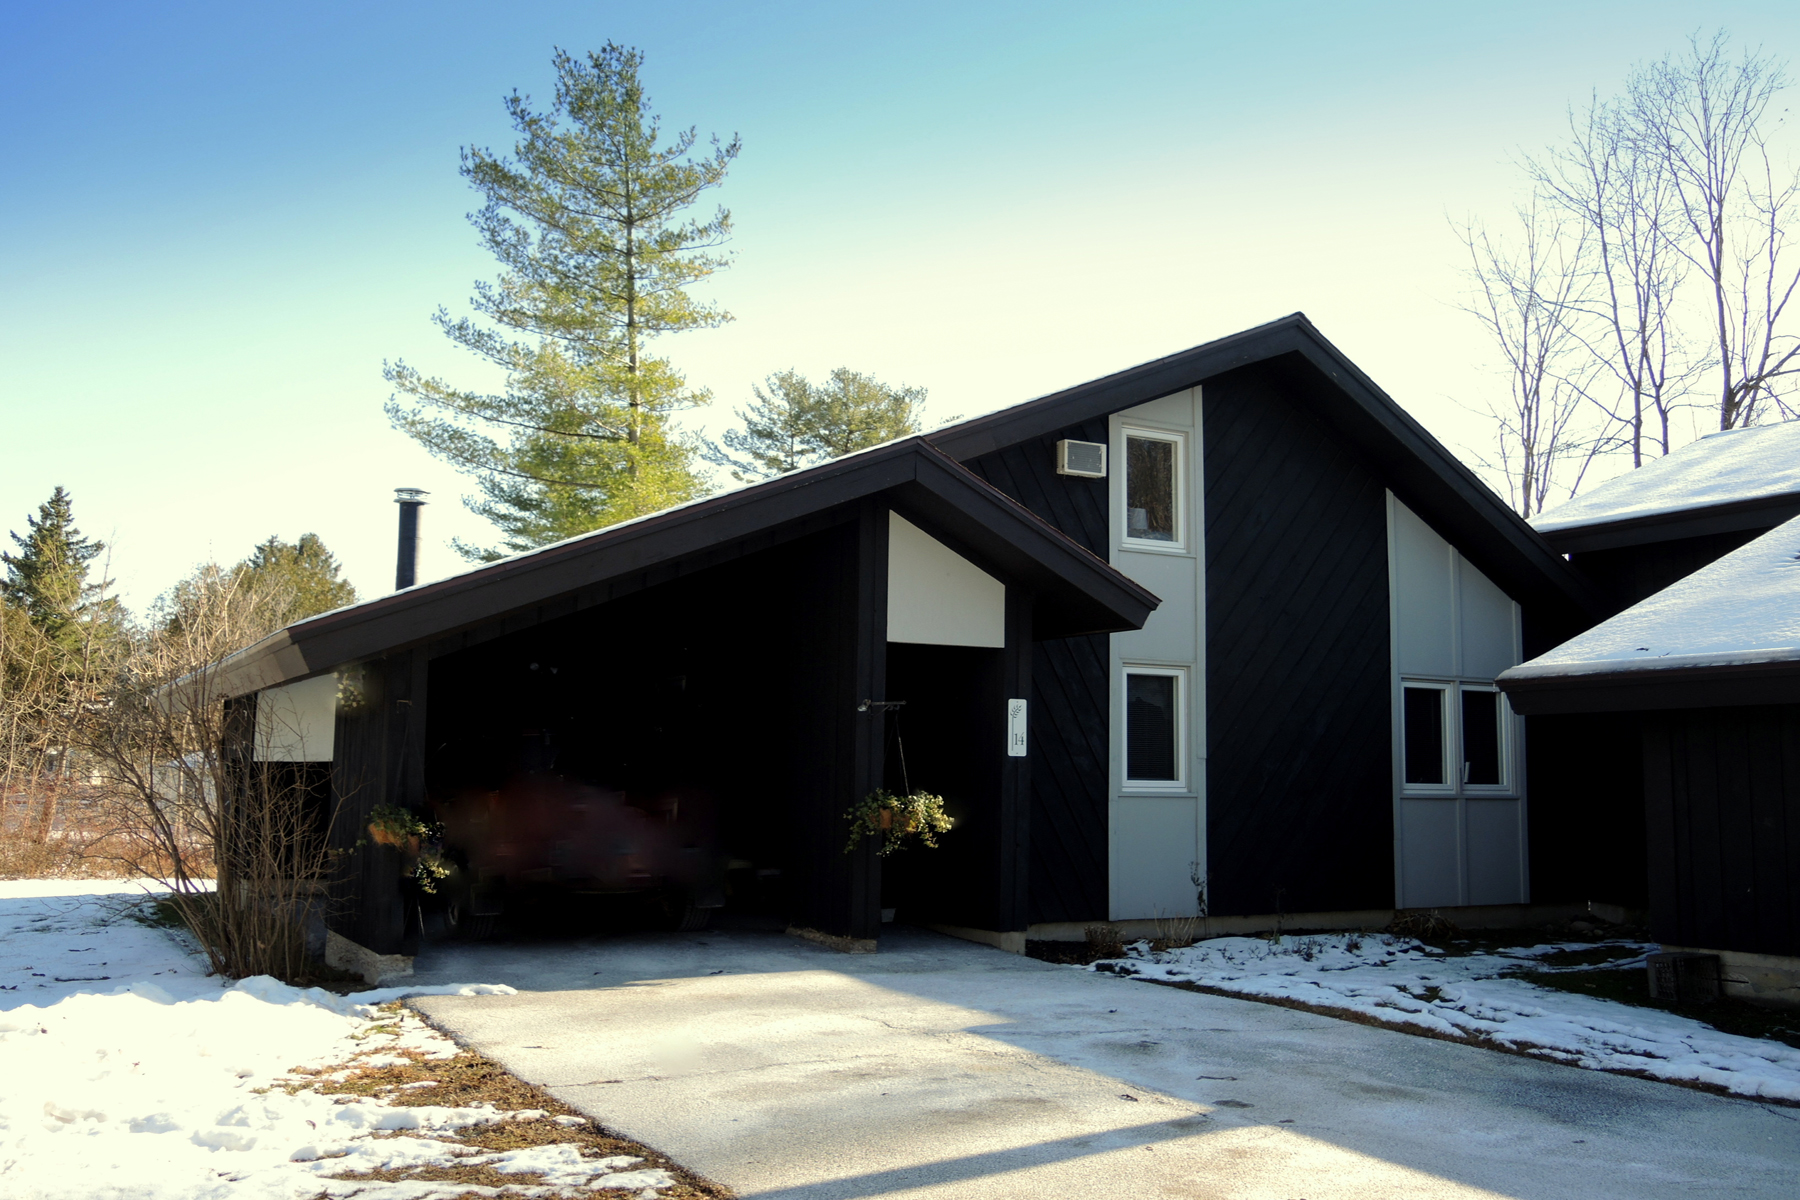 Condominiums for Sale at Peaceful Condo Close to Town 14 Barleyfield Pl Rutland, Vermont 05701 United States